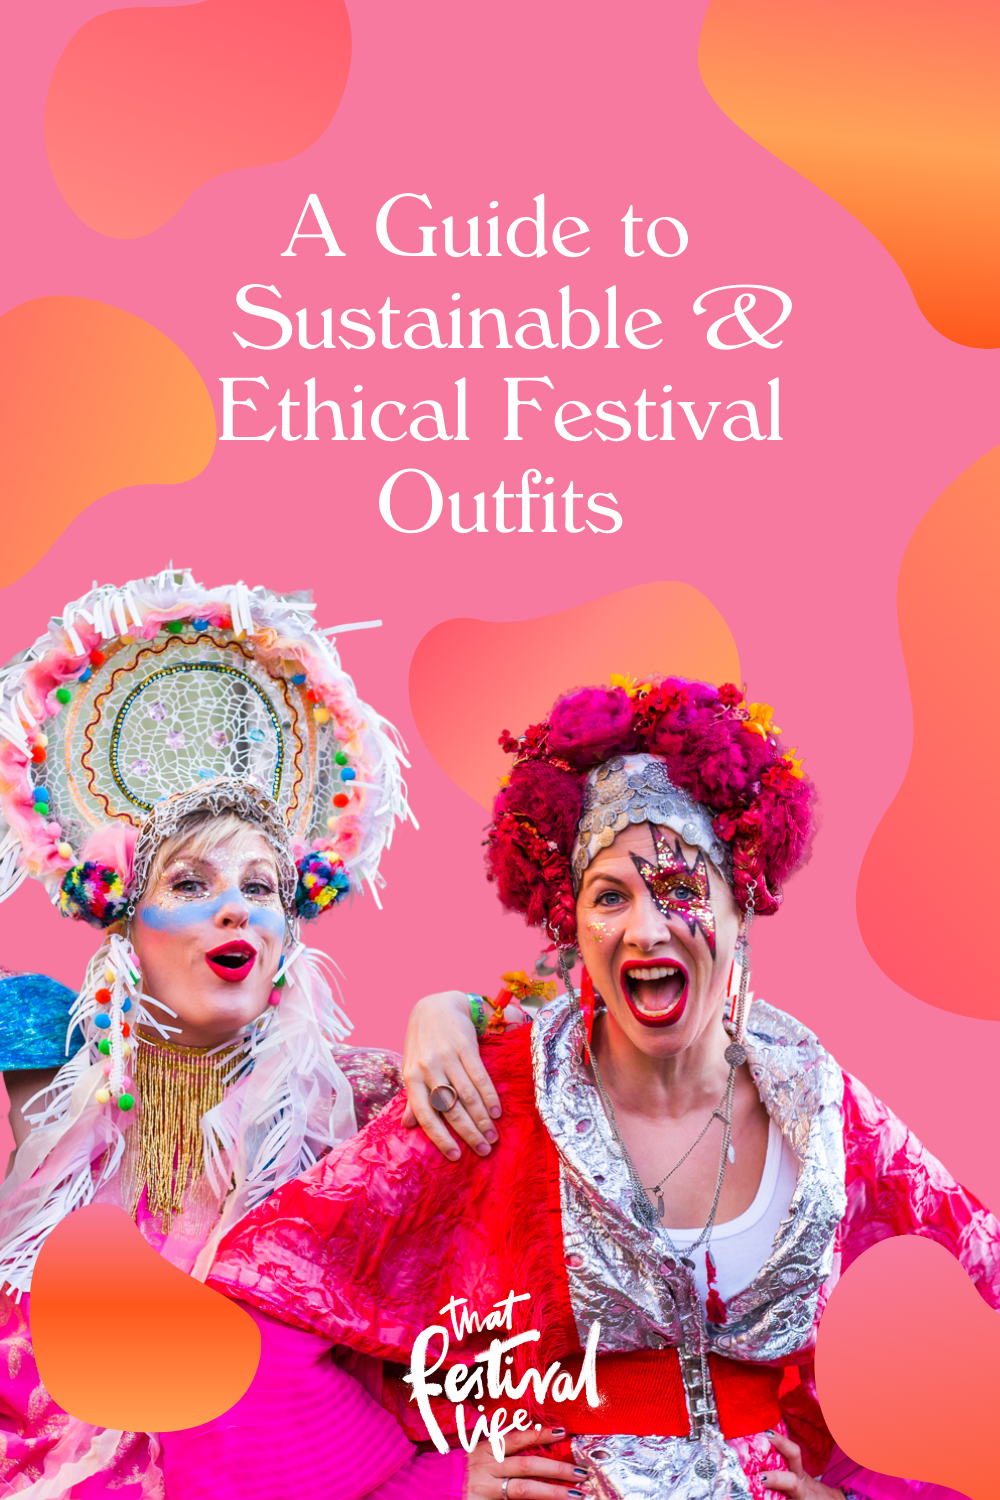 A Guide to Shopping for more Ethical & Sustainable Festival Outfits